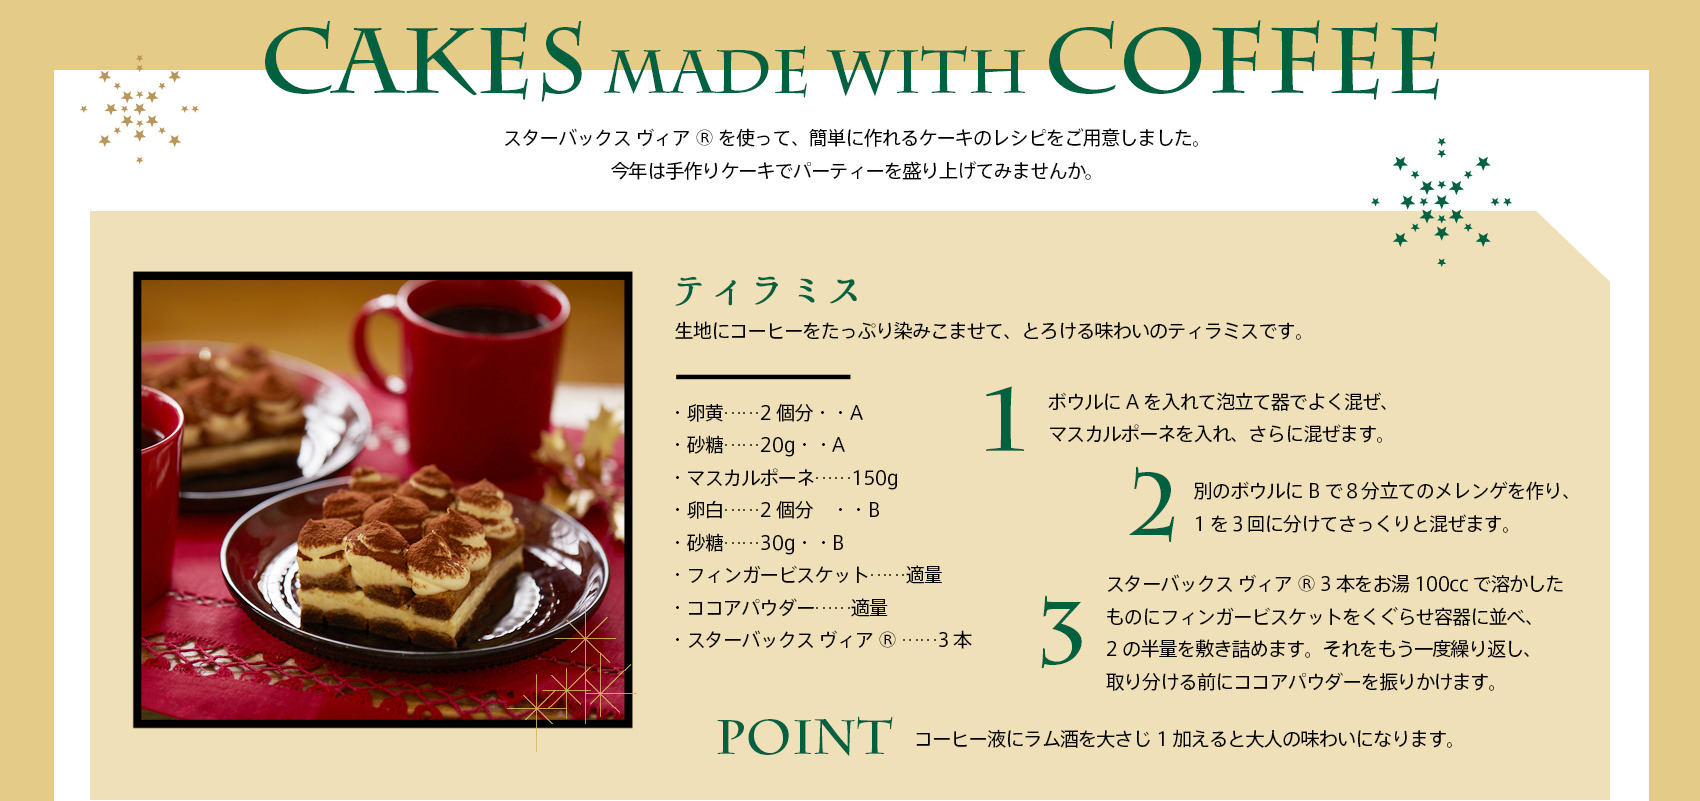 CAKES MADE with COFFEE ティラミス